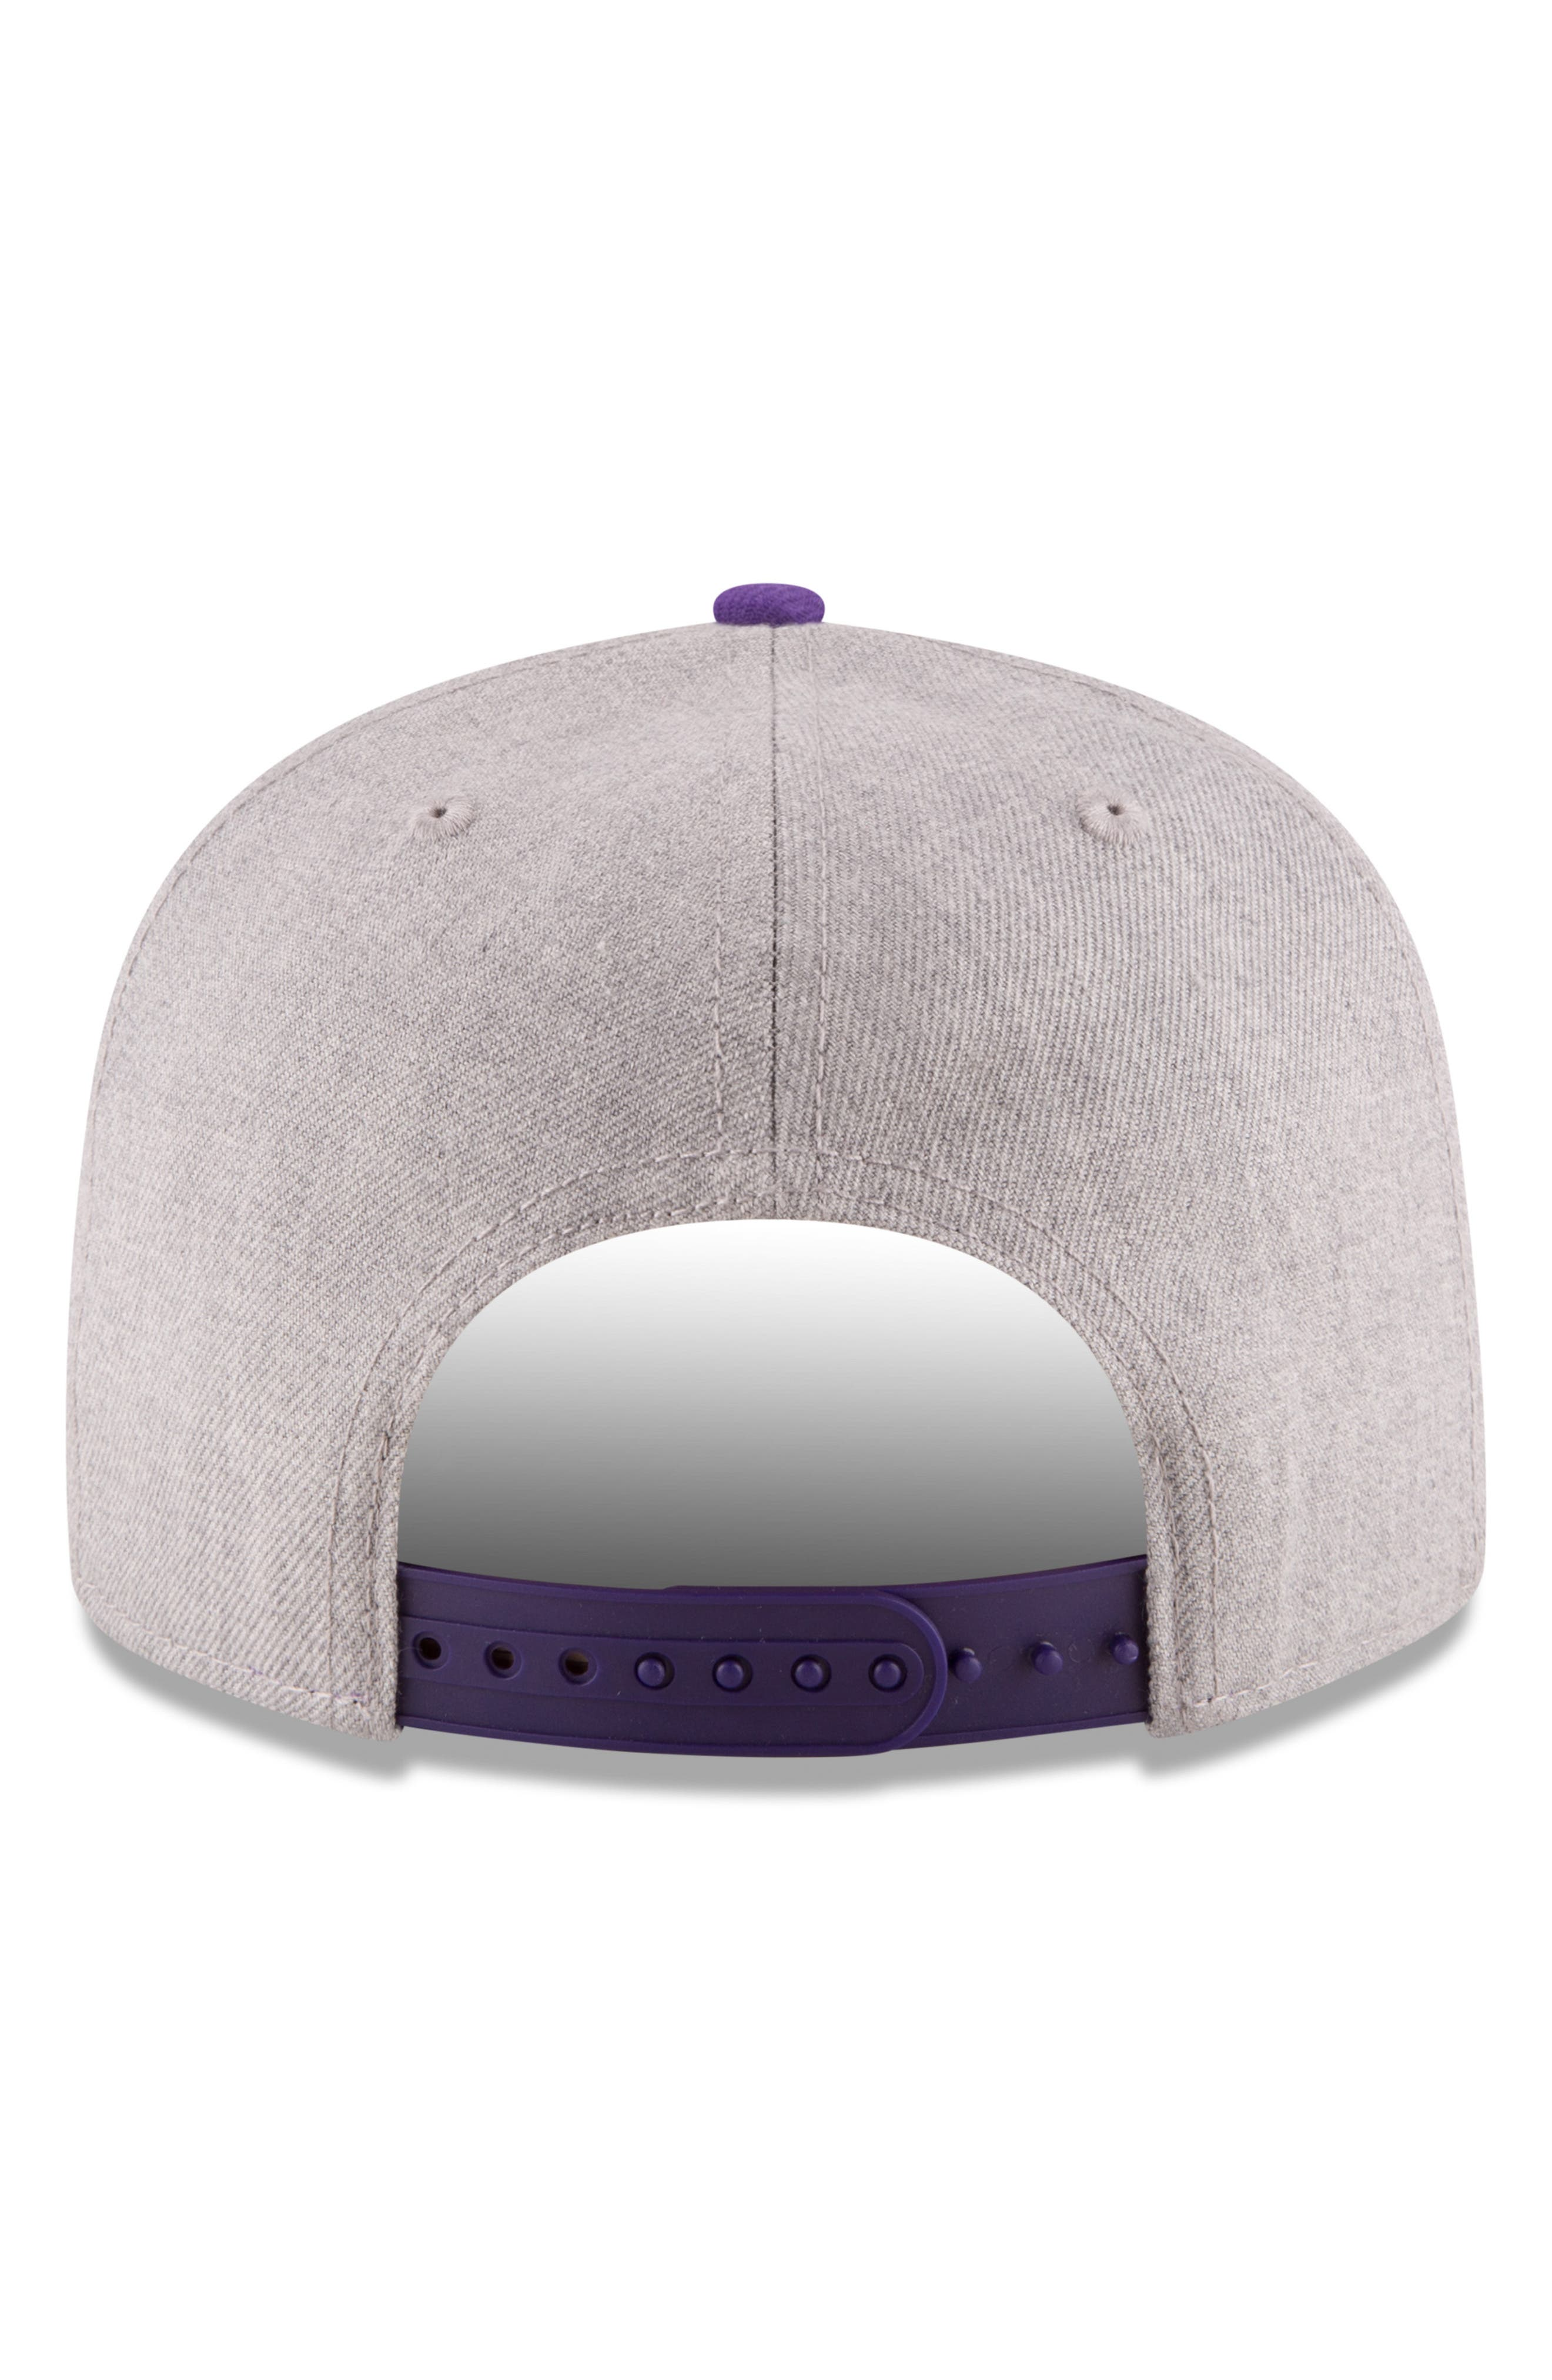 9FIFTY LA Lakers Two-Tone Cap,                             Alternate thumbnail 4, color,                             020